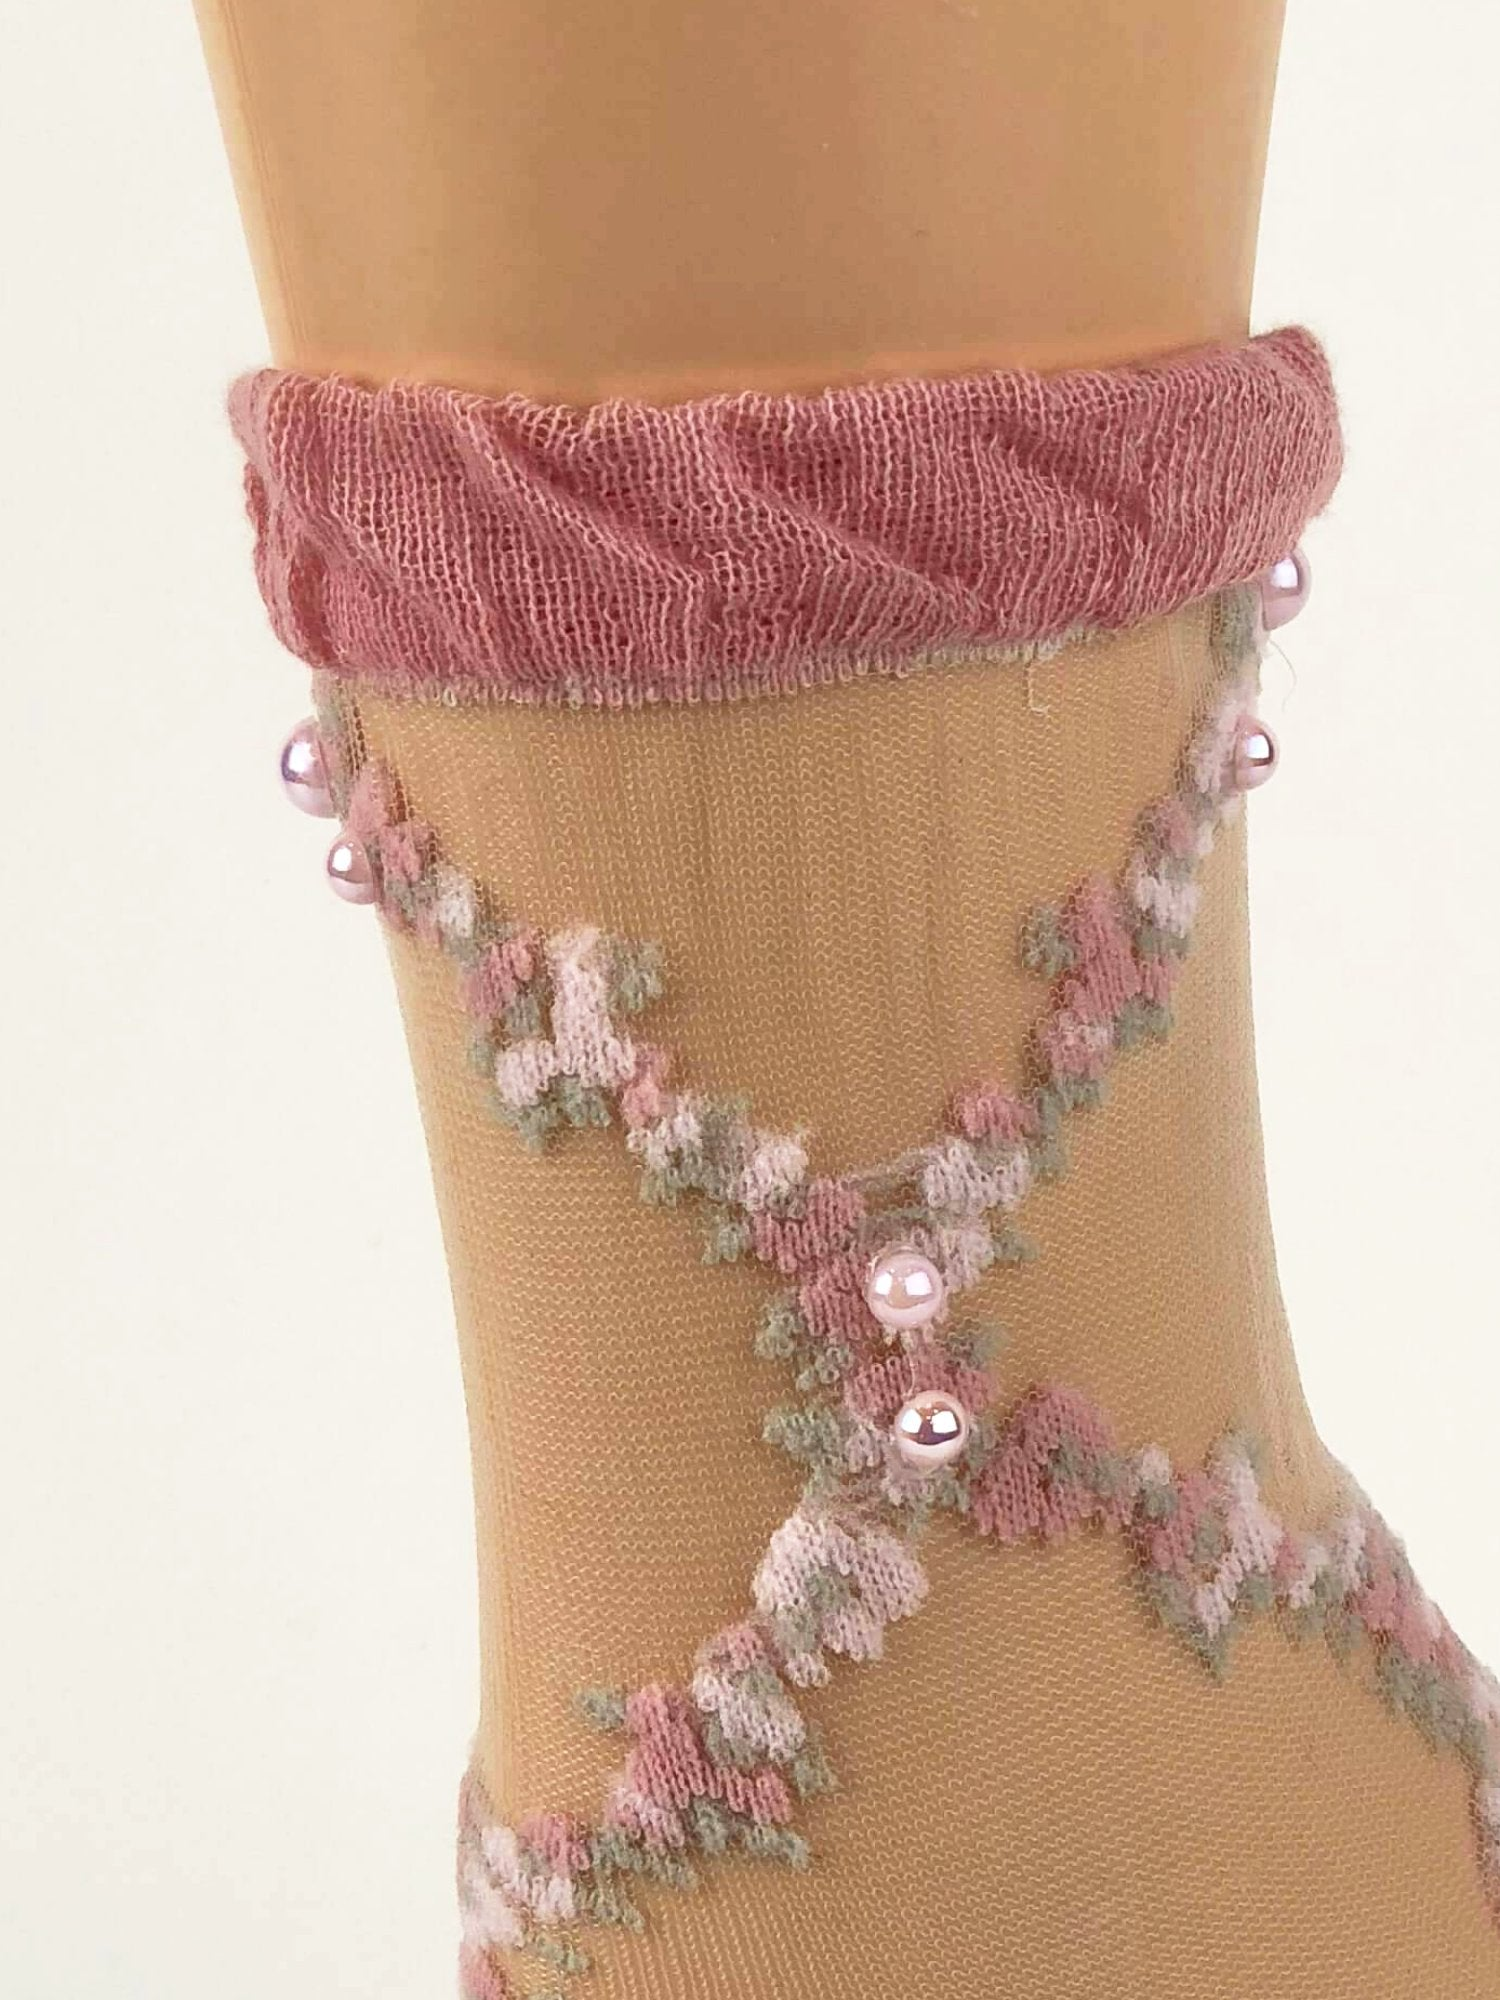 Pink/White Criss/Cross Patttern Sheer Socks - Global Trendz Fashion®